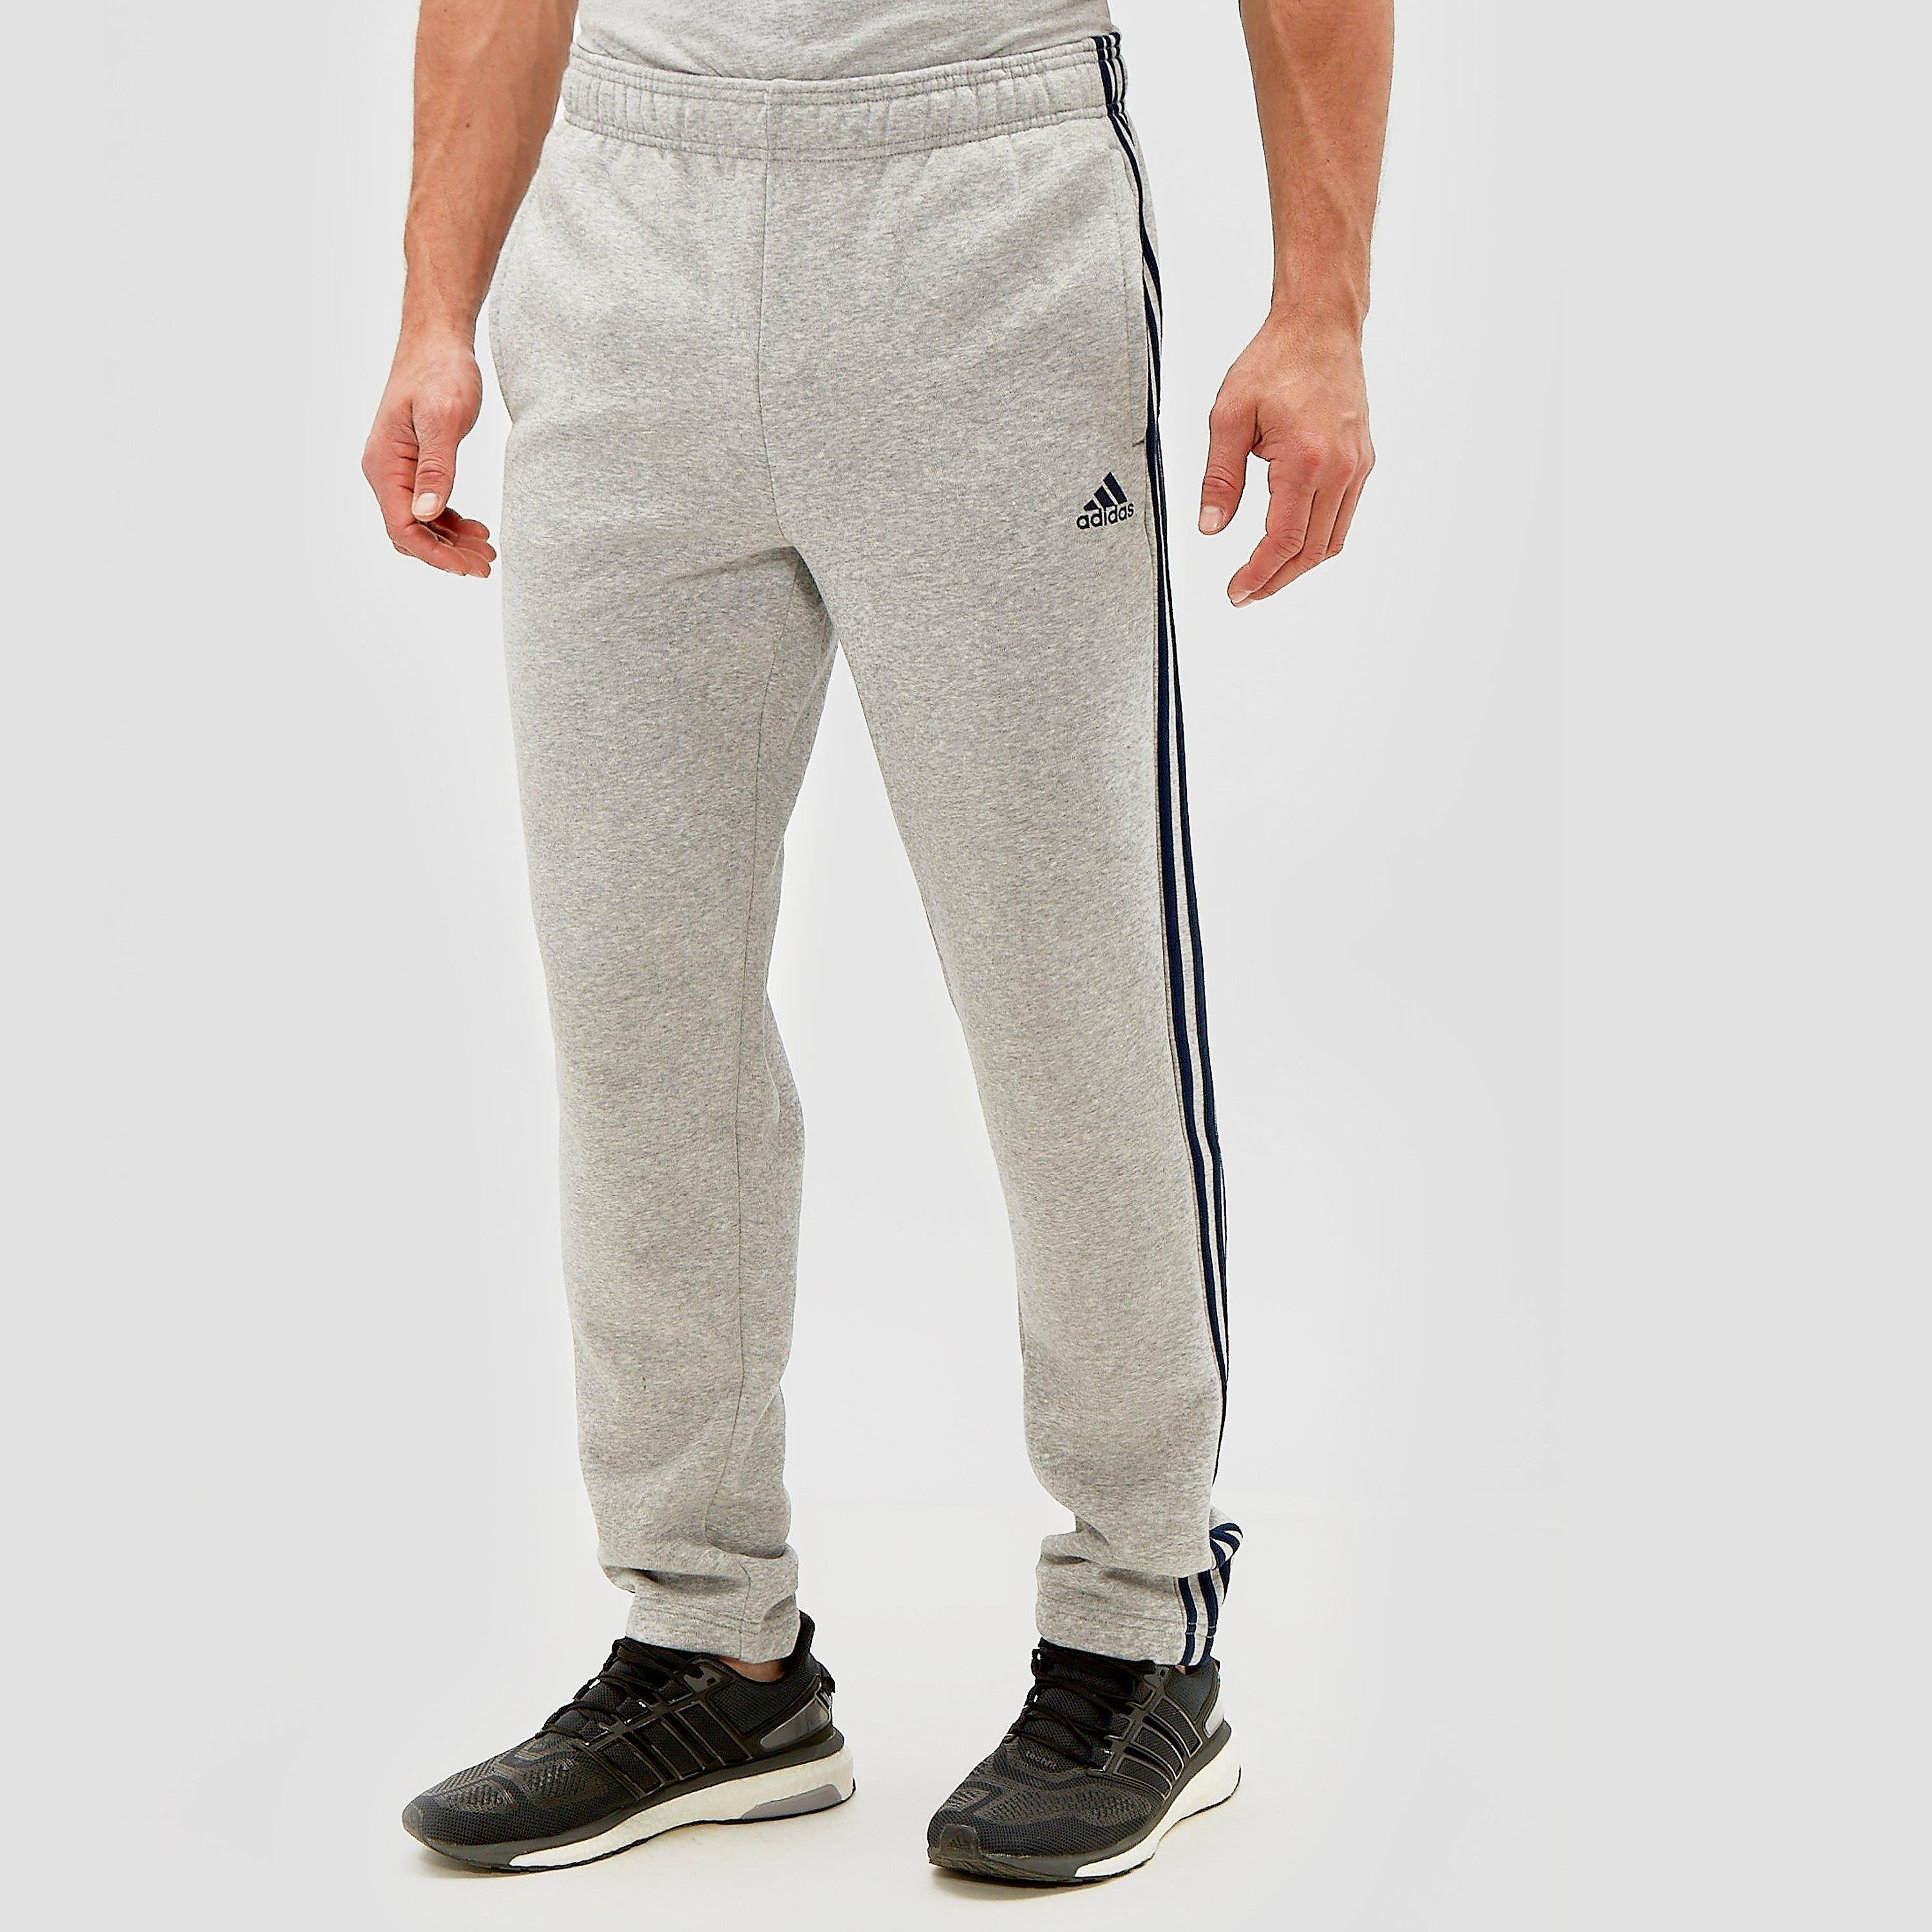 ADIDAS ESSENTIALS 3-STRIPES FLEECE BROEK GRIJS HEREN